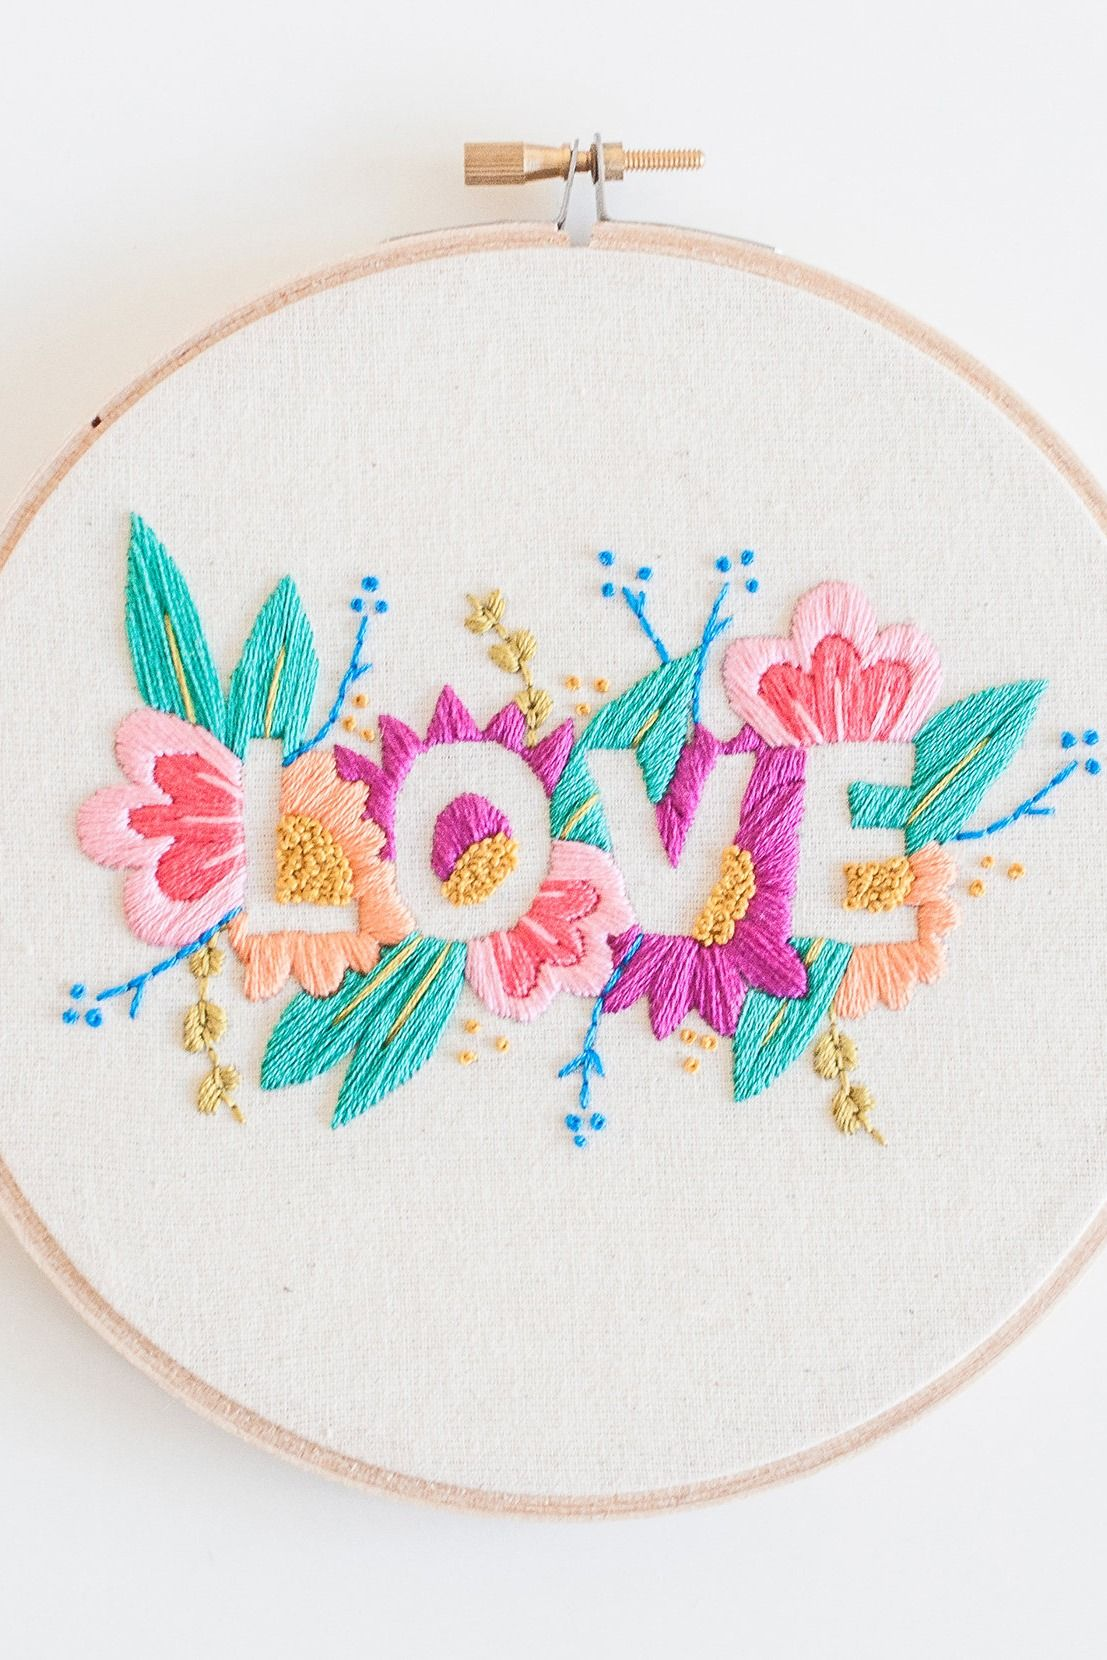 And this embroidery pattern.